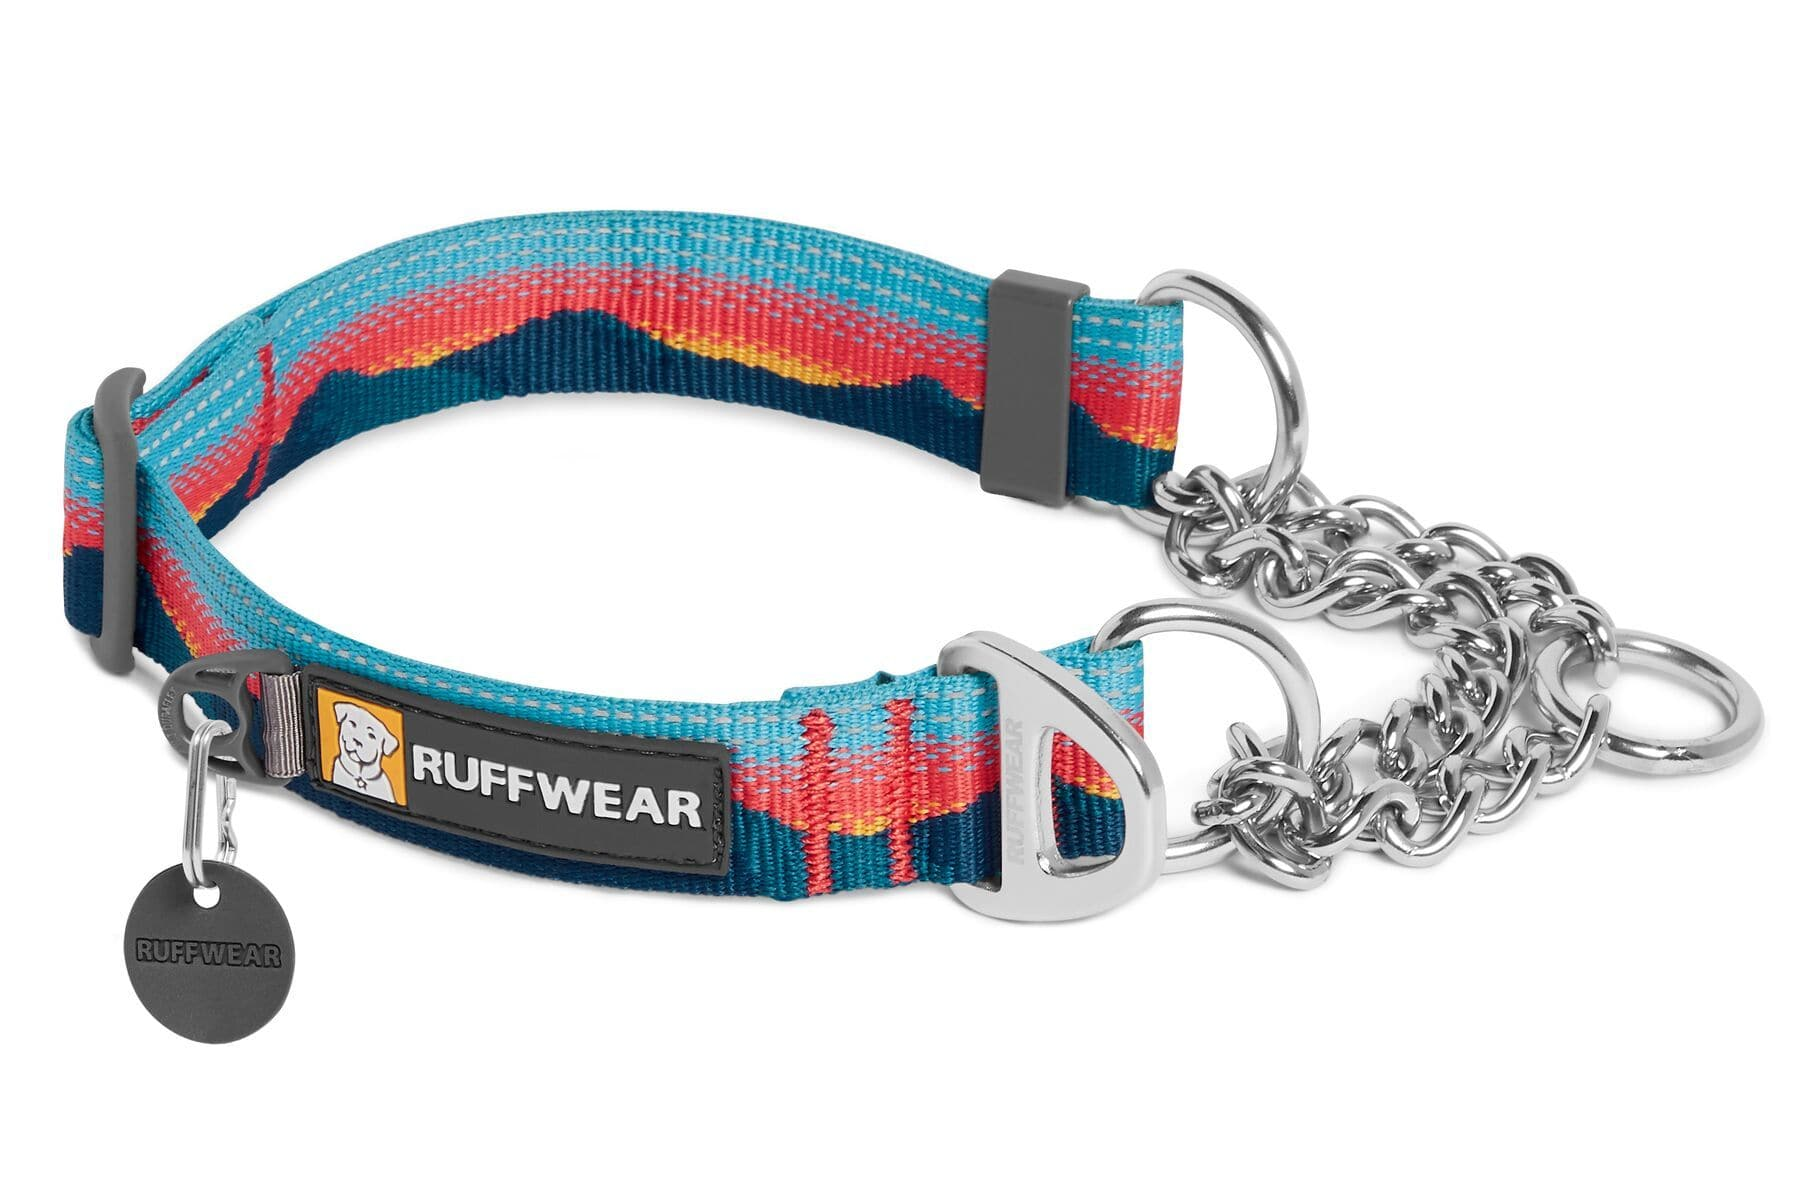 Collar para Perros Modelo Chain Reaction Atardecer (Sunset) - Ruffwear